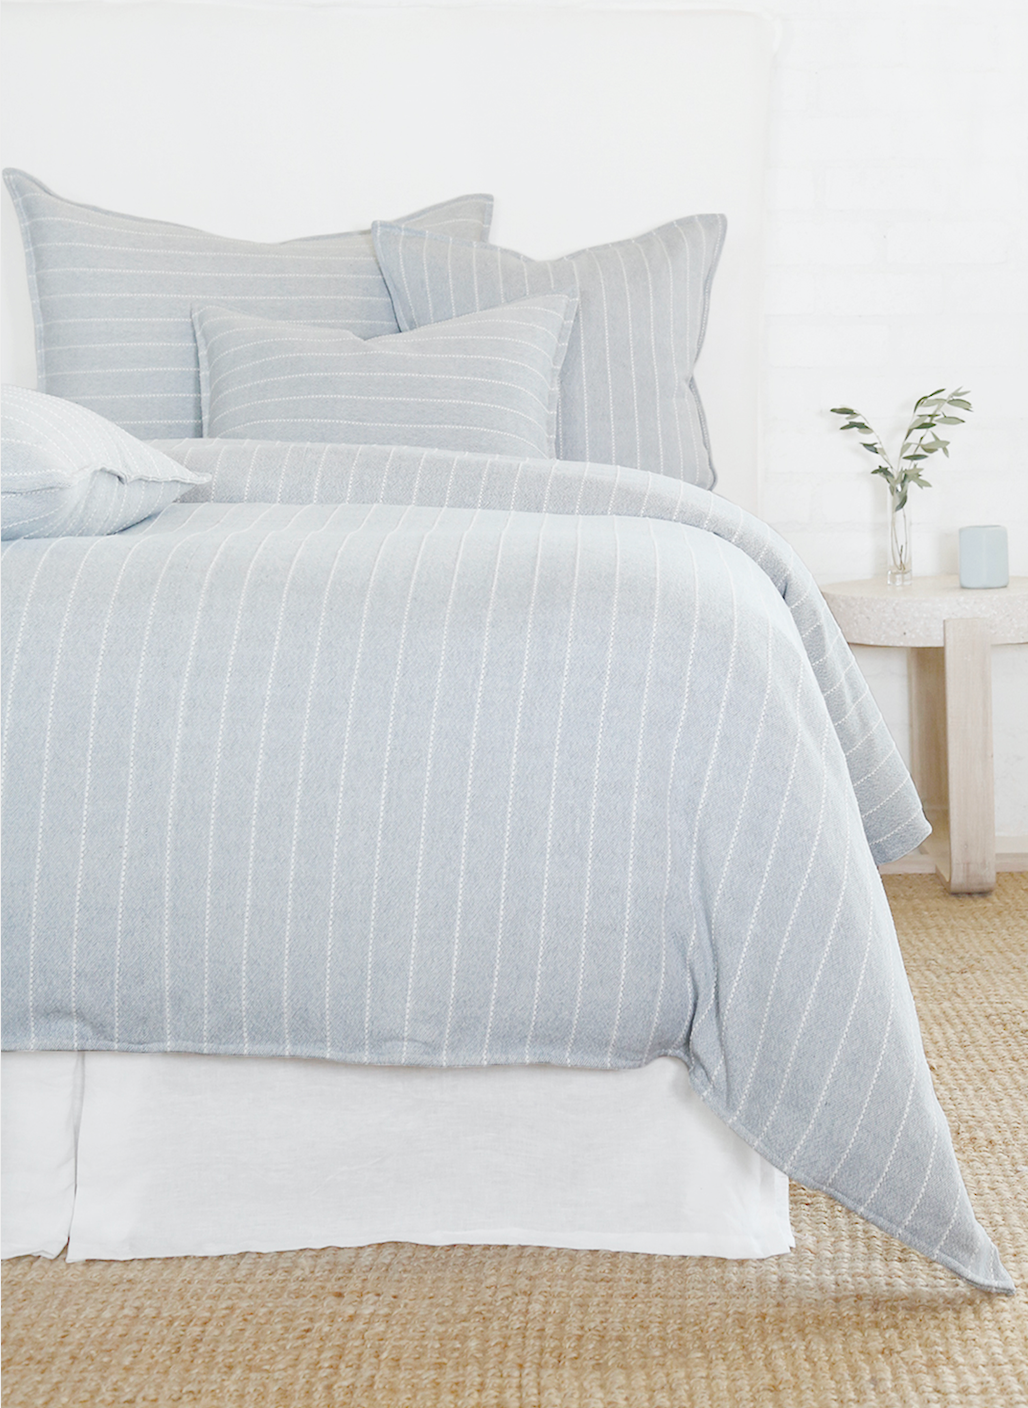 Light blue striped bedding on a bed